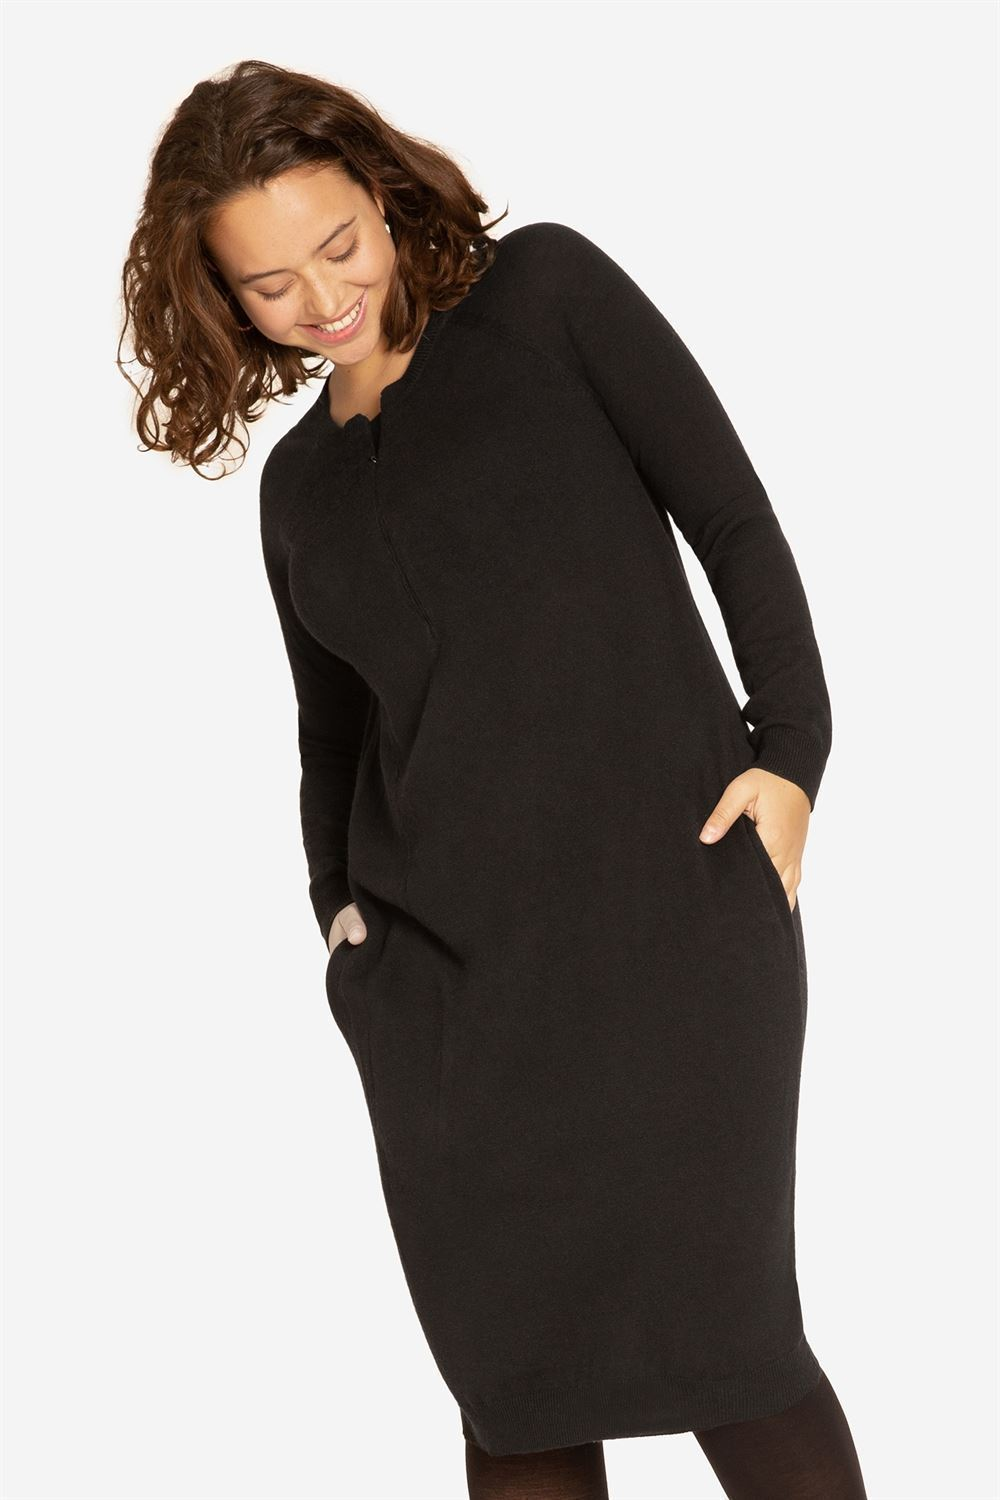 Black nursing dress with pockets and zipper nursing opening - on plus size model